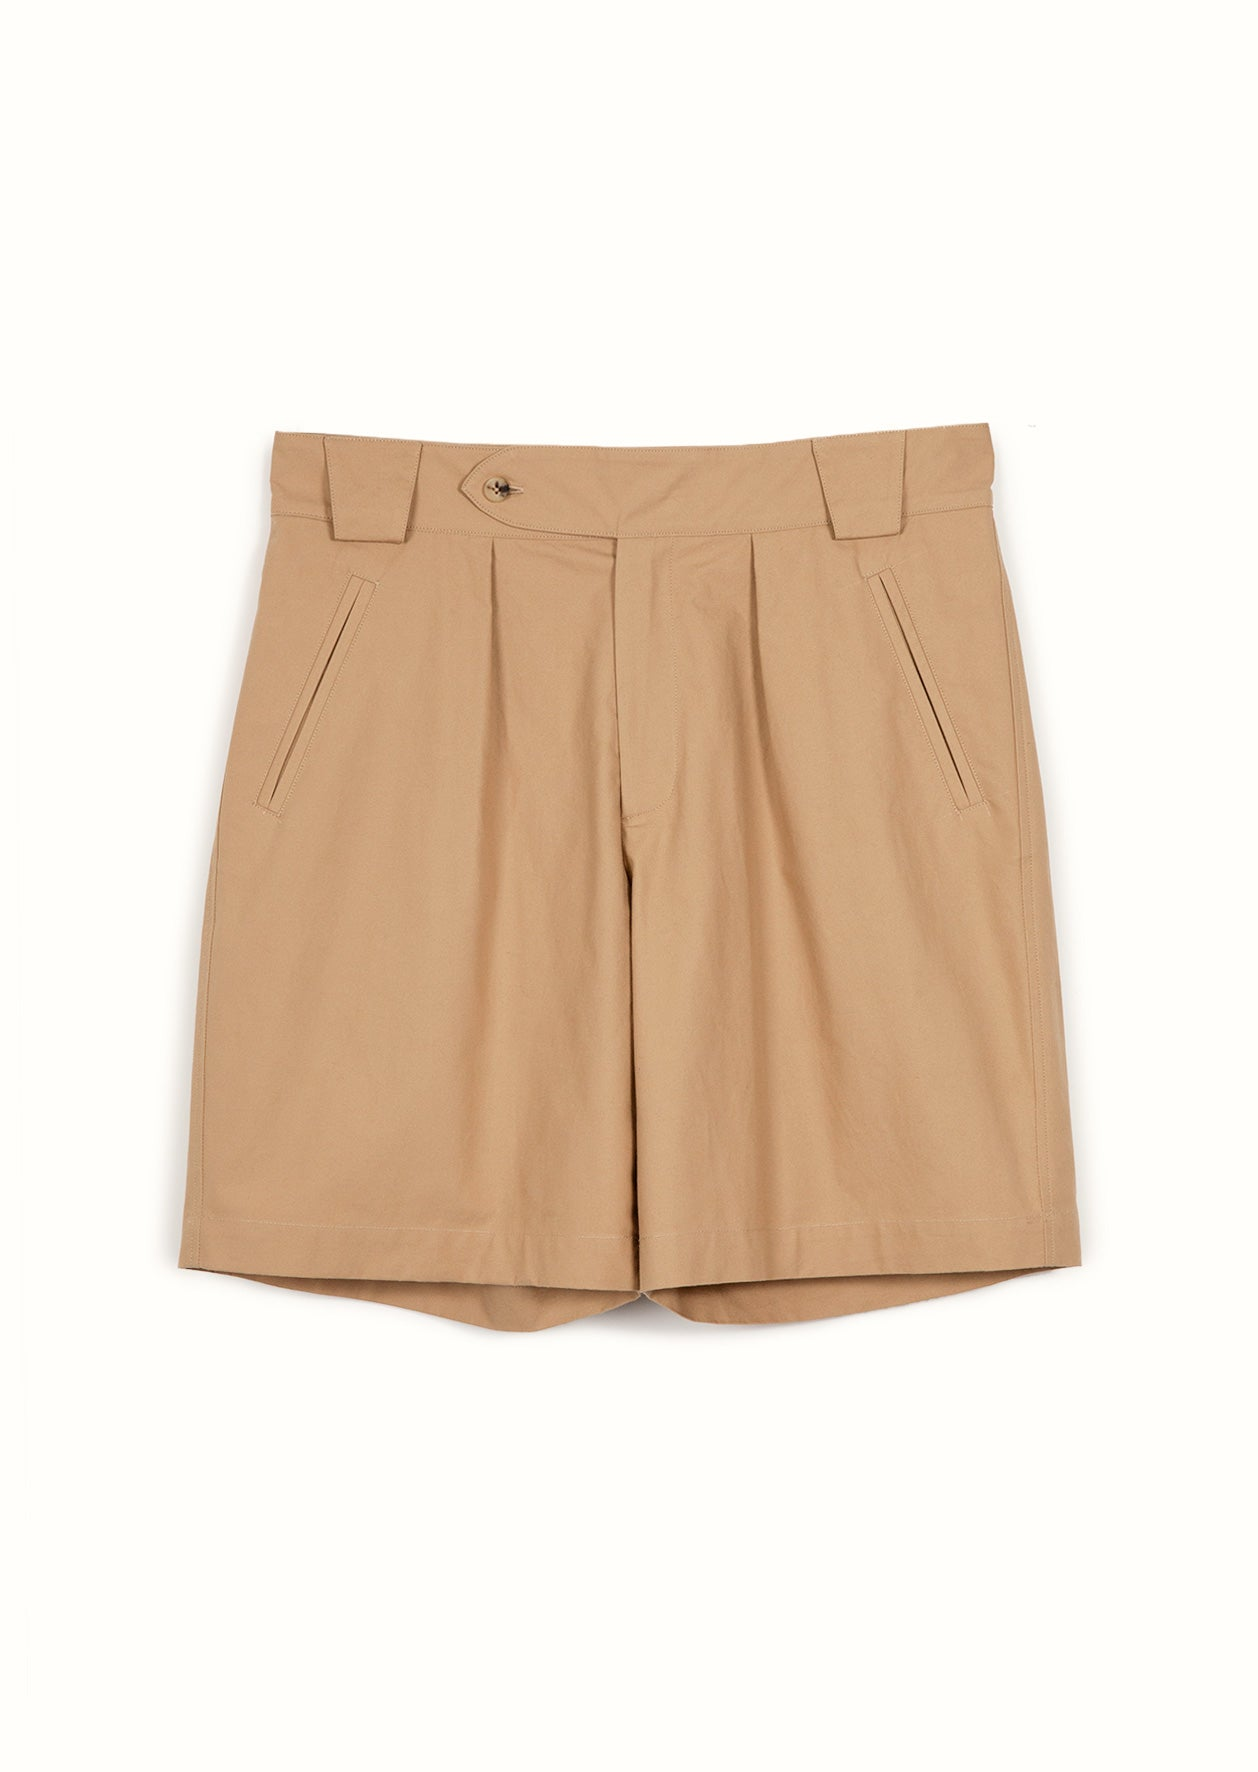 De Bonne Facture - Hiking shorts - Compact cotton - Camel